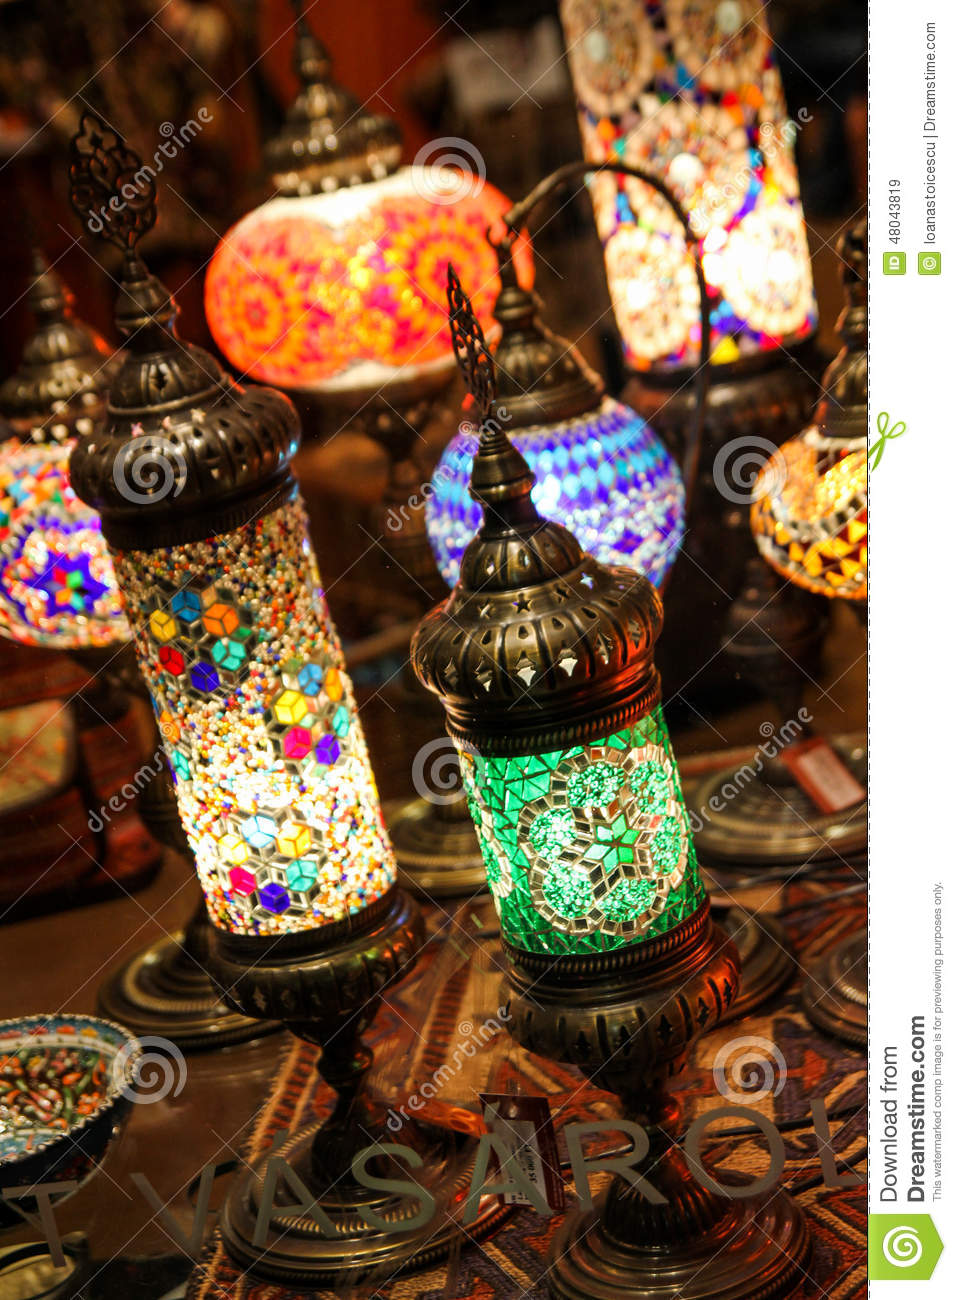 Antique glass mosaic table lamps stock image image 48043819 for Table mosaic xl 6 chaises encastrables